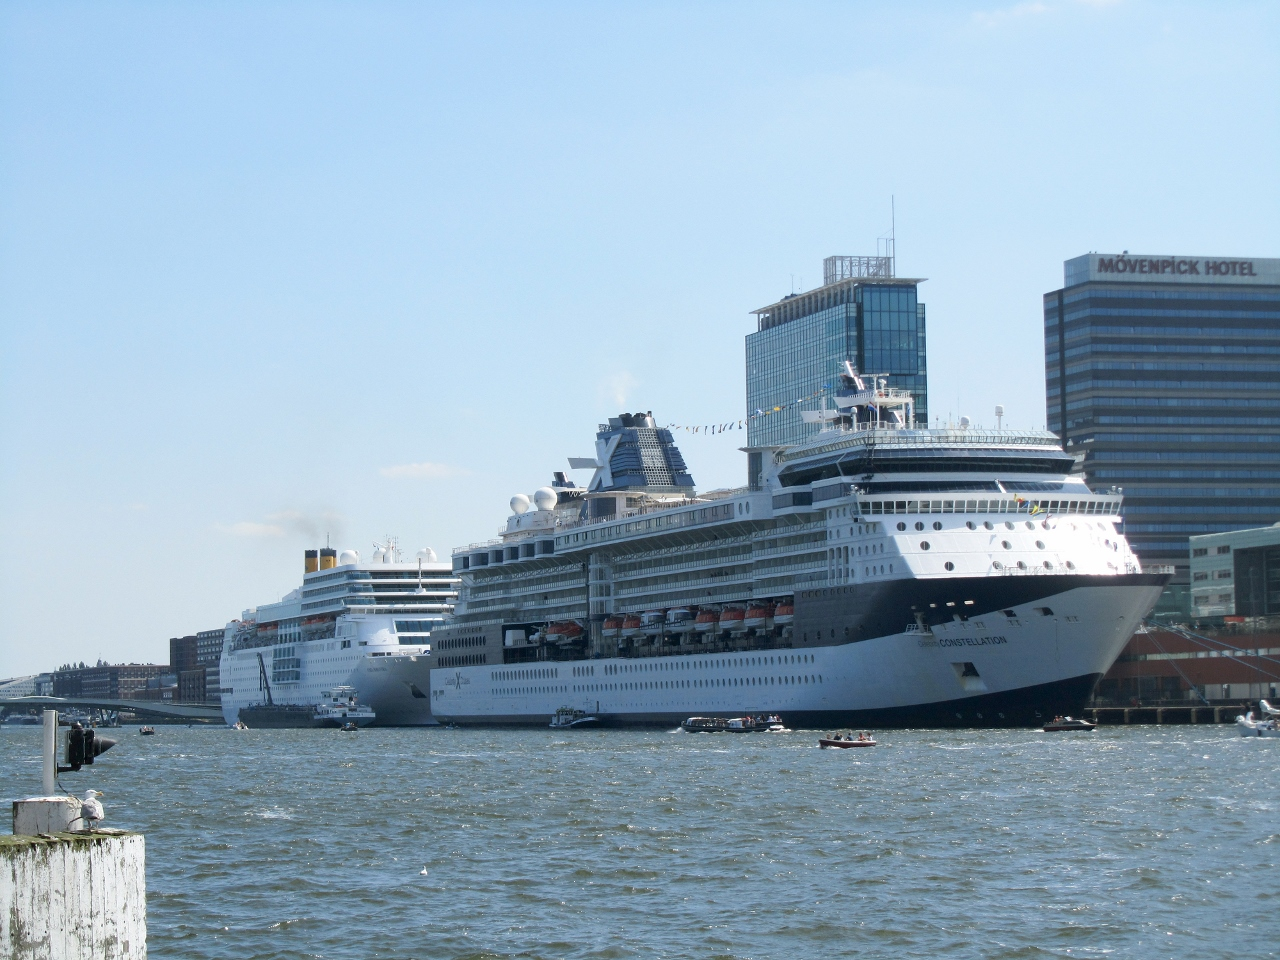 The Celebrity Constellation and Costa NeoRomantica are docked together in Amsterdam.